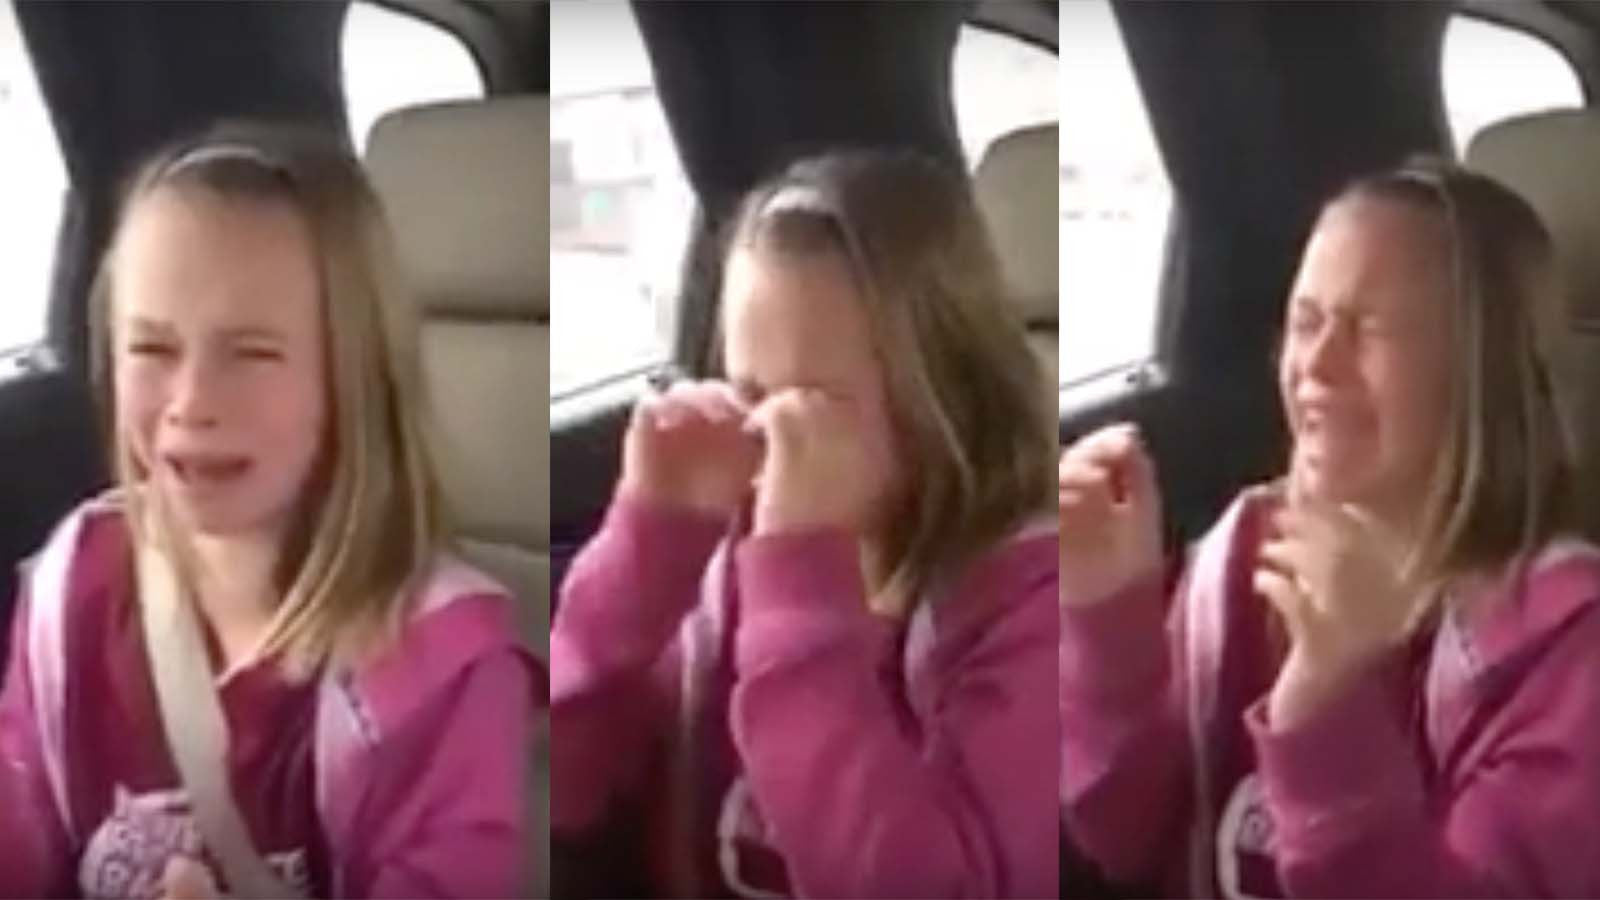 Donald Trump made this little girl cry...